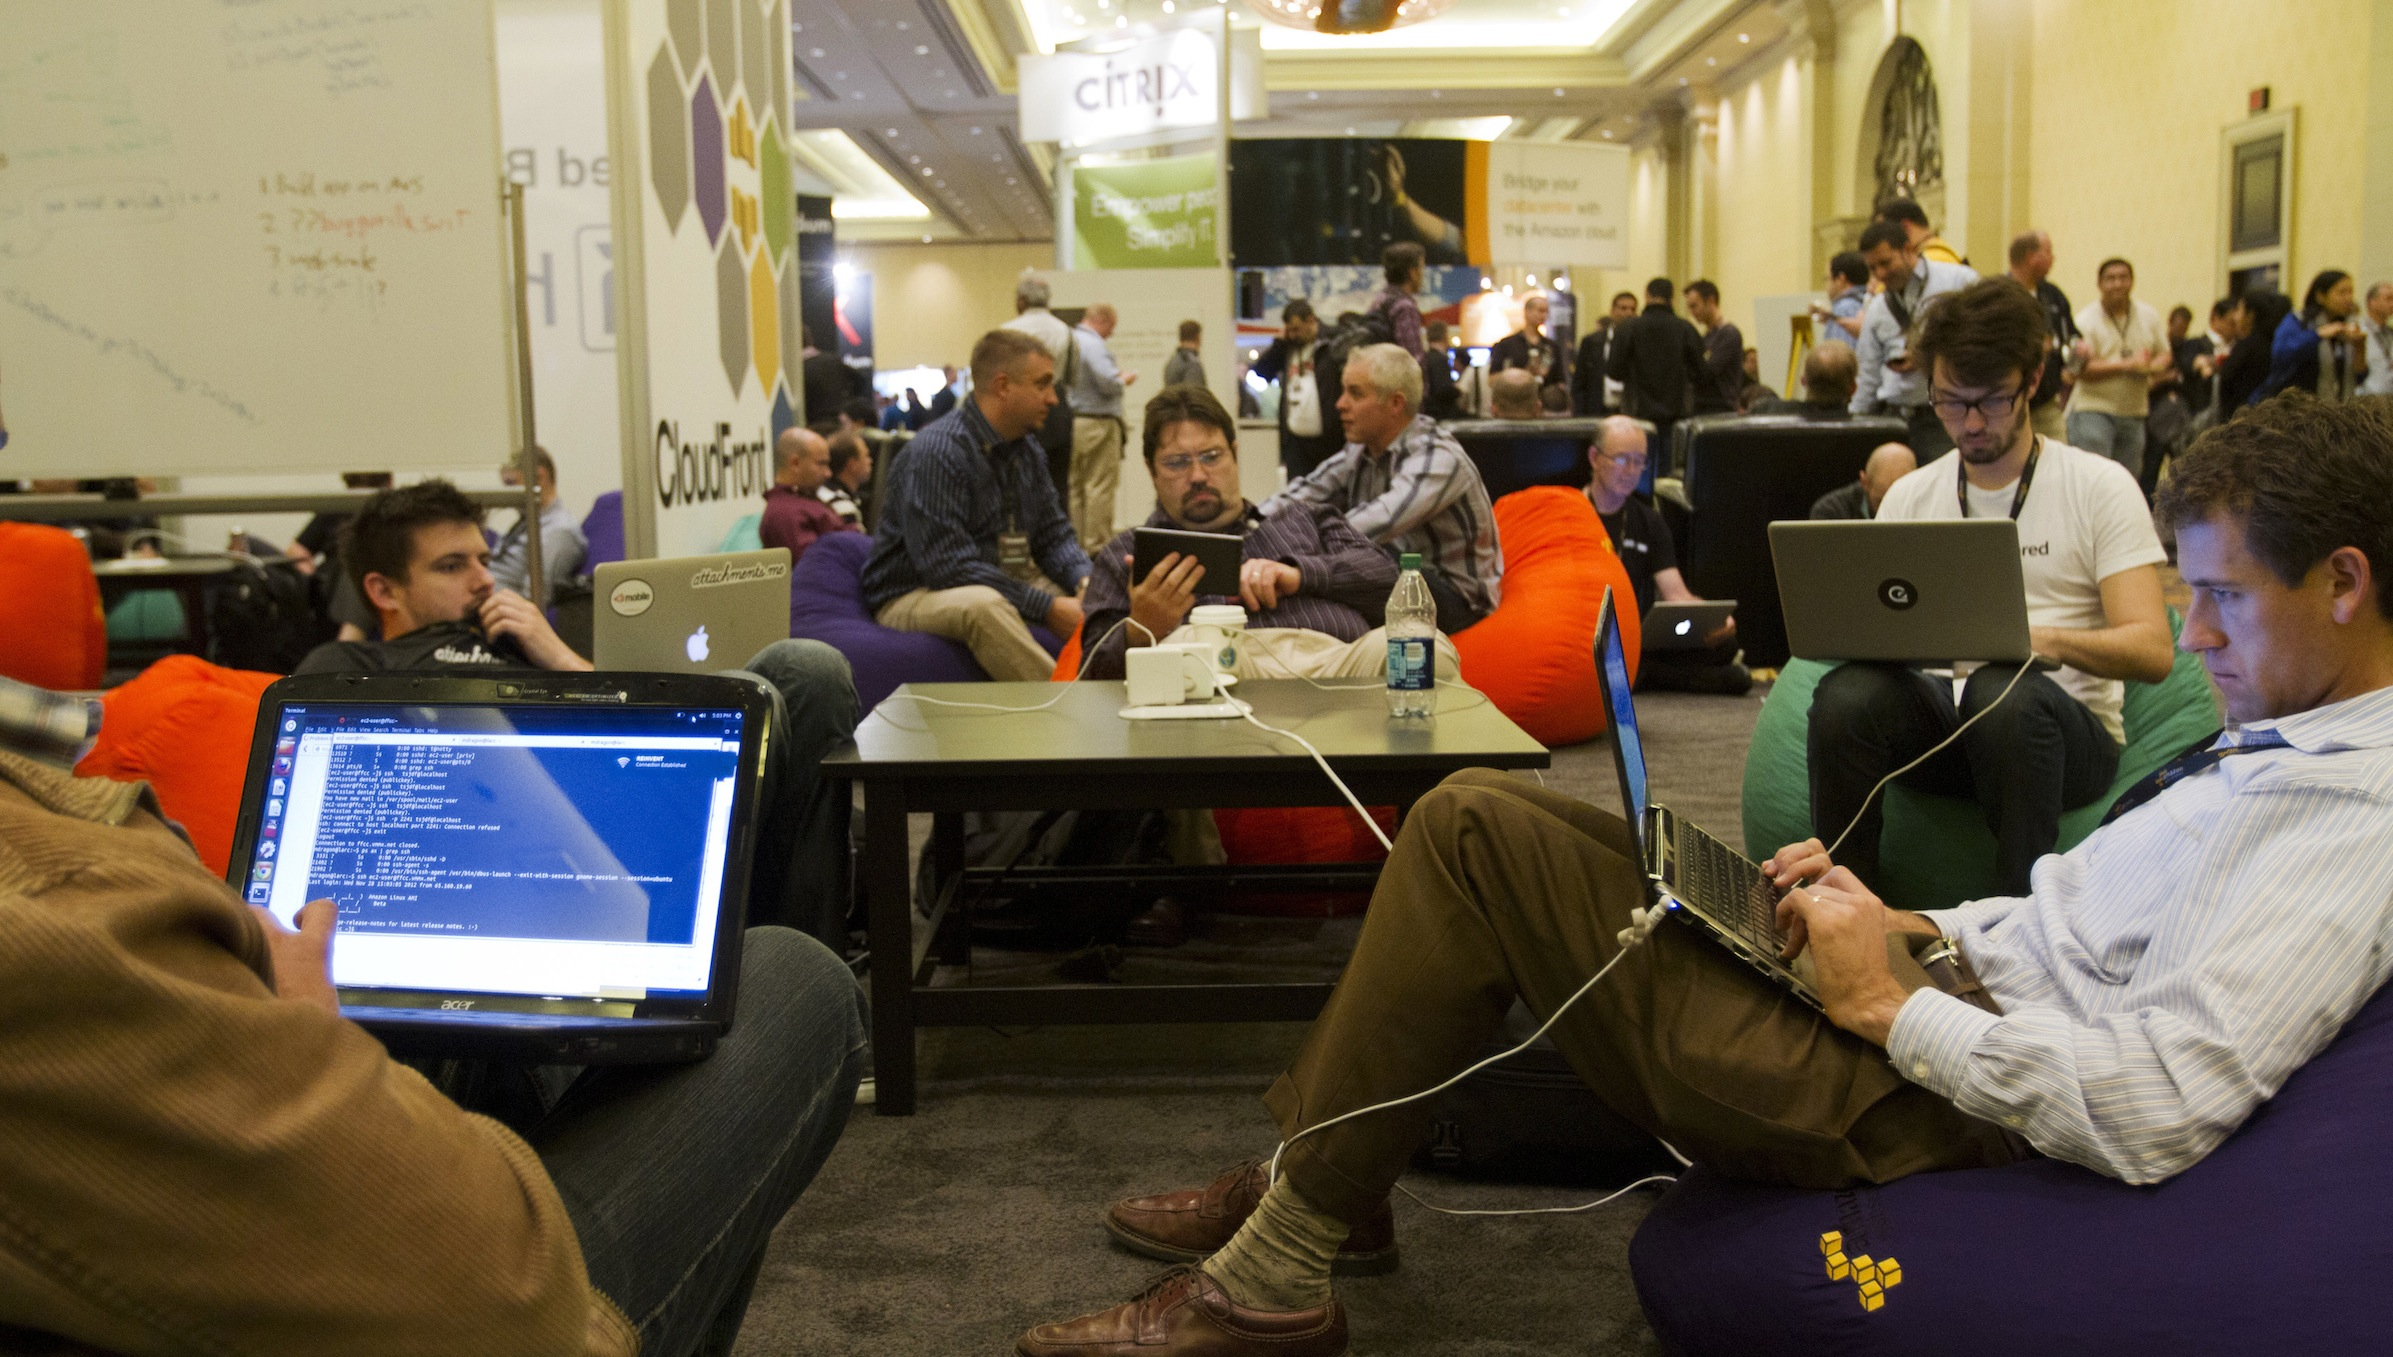 Developers and programmers participate in a coding challenge at the AWS Re:Invent conference at the Sands Expo in Las Vegas Nevada Nov. 28, 2012. REUTERS/Richard Brian(UNITED STATES - Tags: SCIENCE TECHNOLOGY BUSINESS) - RTR3B00V